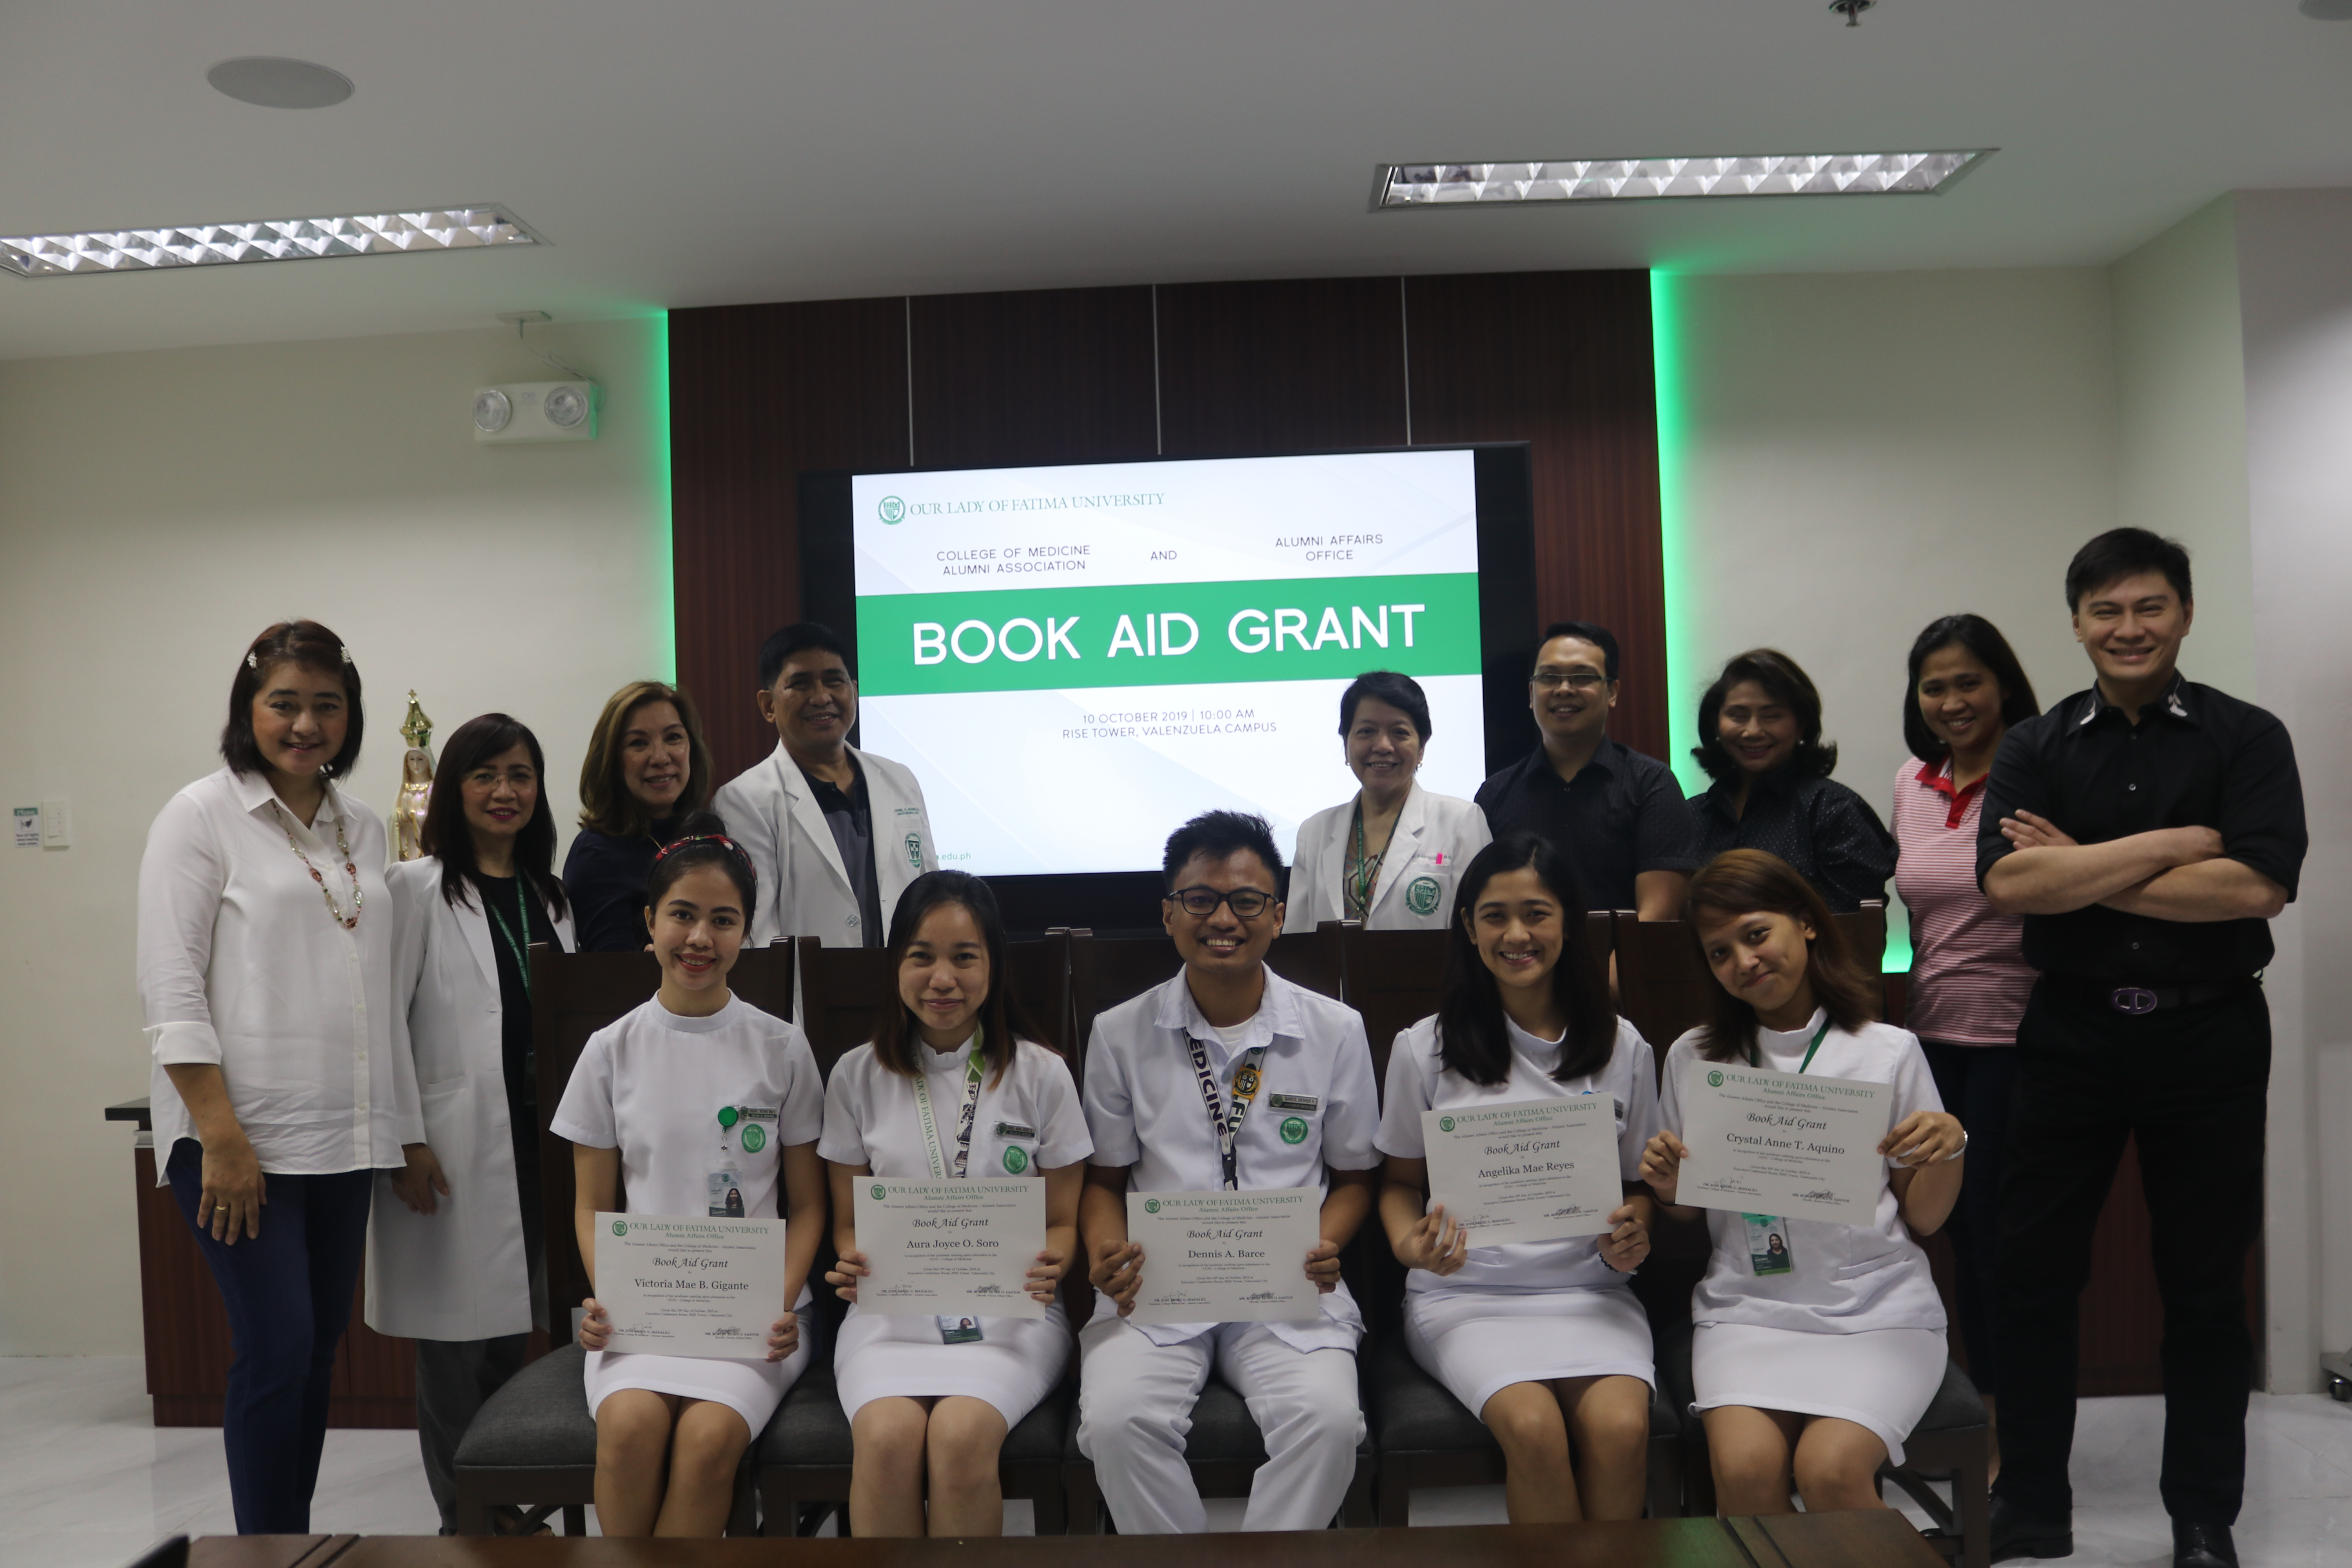 5 Students receive Book Aid Grants from Medicine Alumni